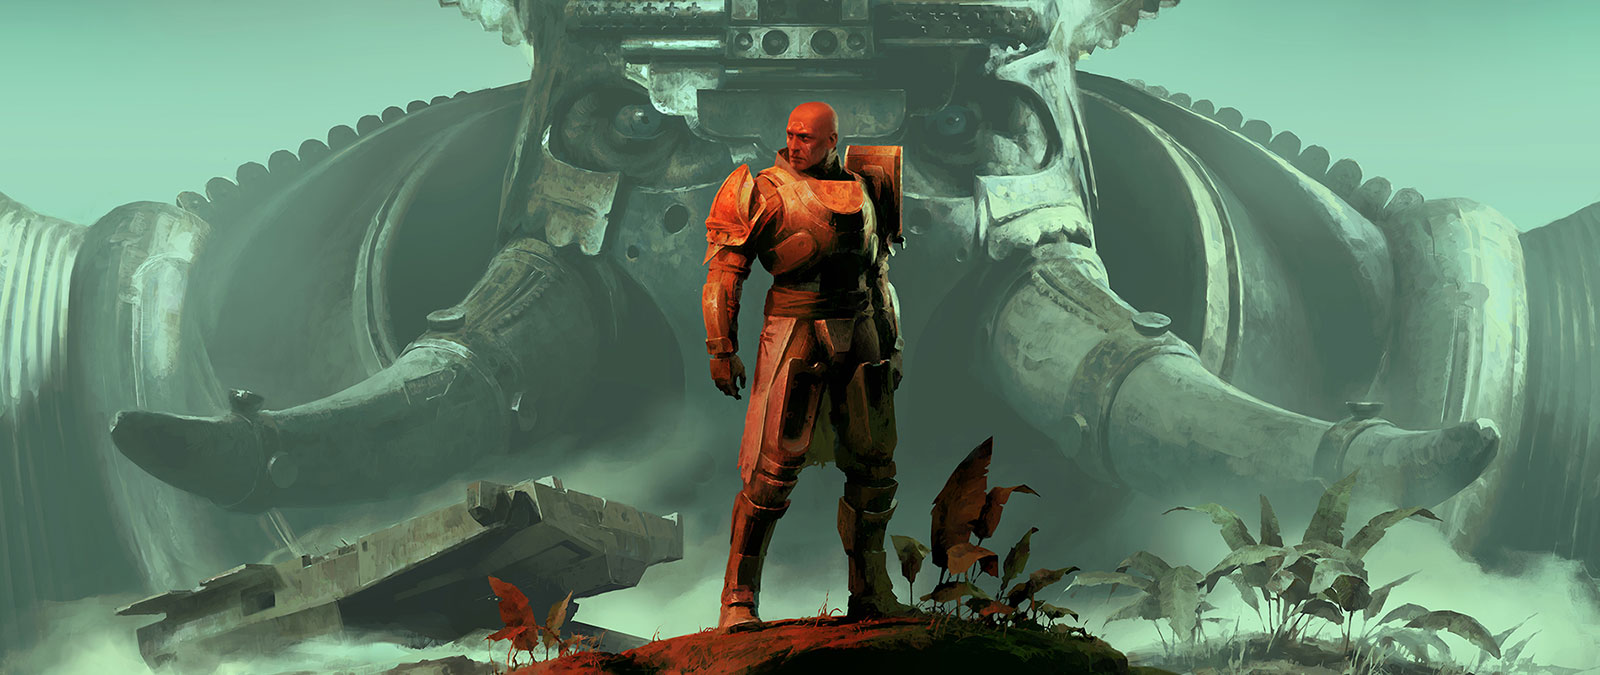 Commander Zavala stands on a mound of dirt in front of a massive face wearing a helmet